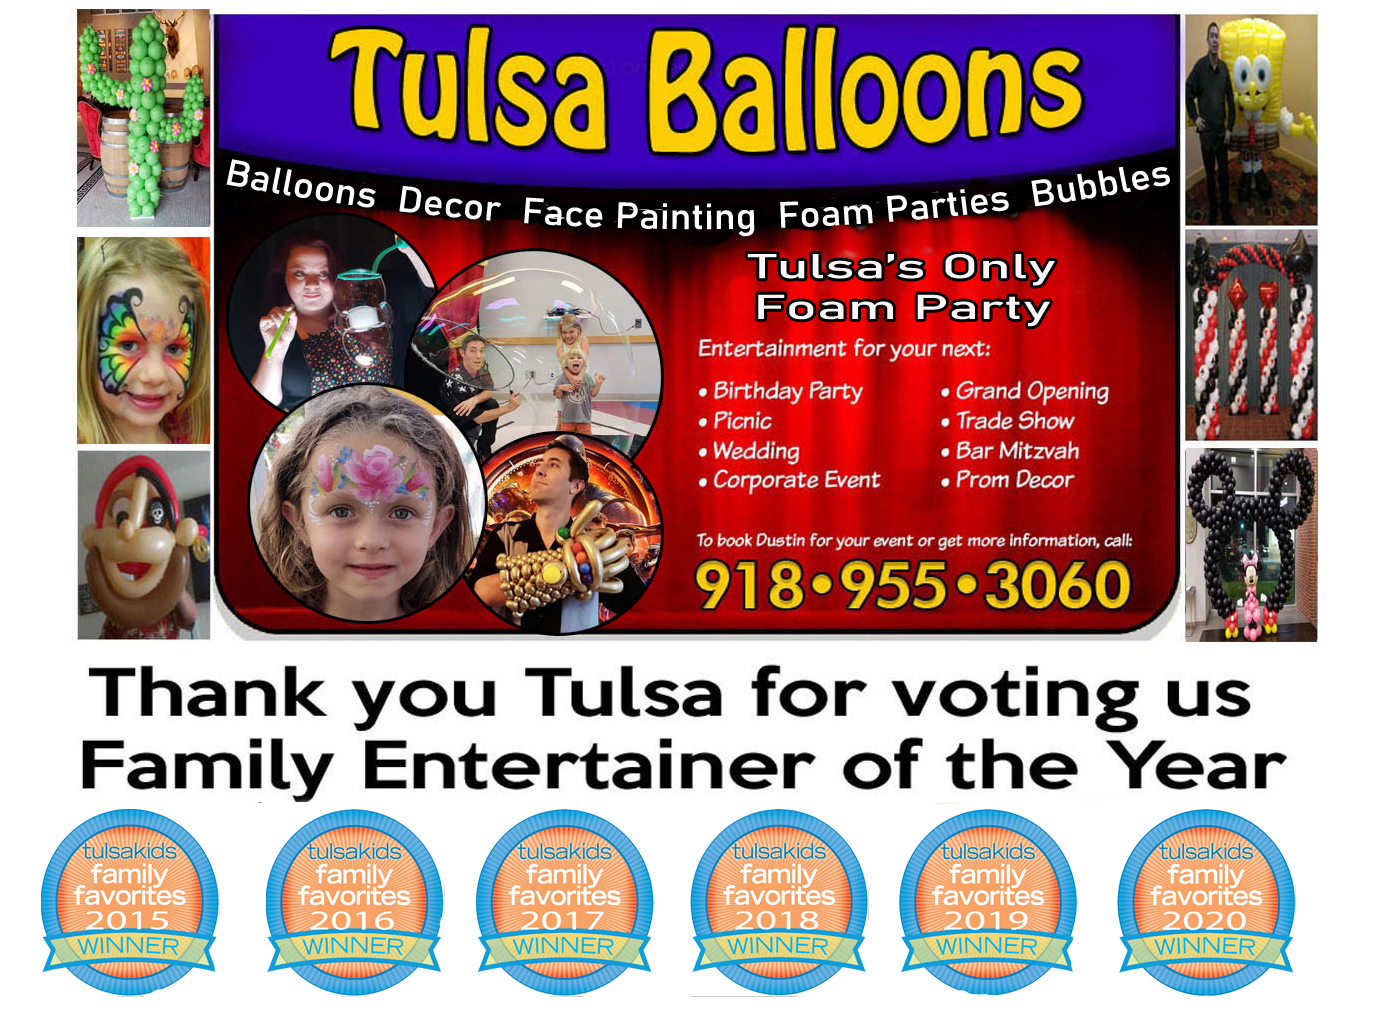 ForAllEntertainment.com: Balloon Sculptures & Decor, Juggling, Fire-Eating, Magic, Clowning